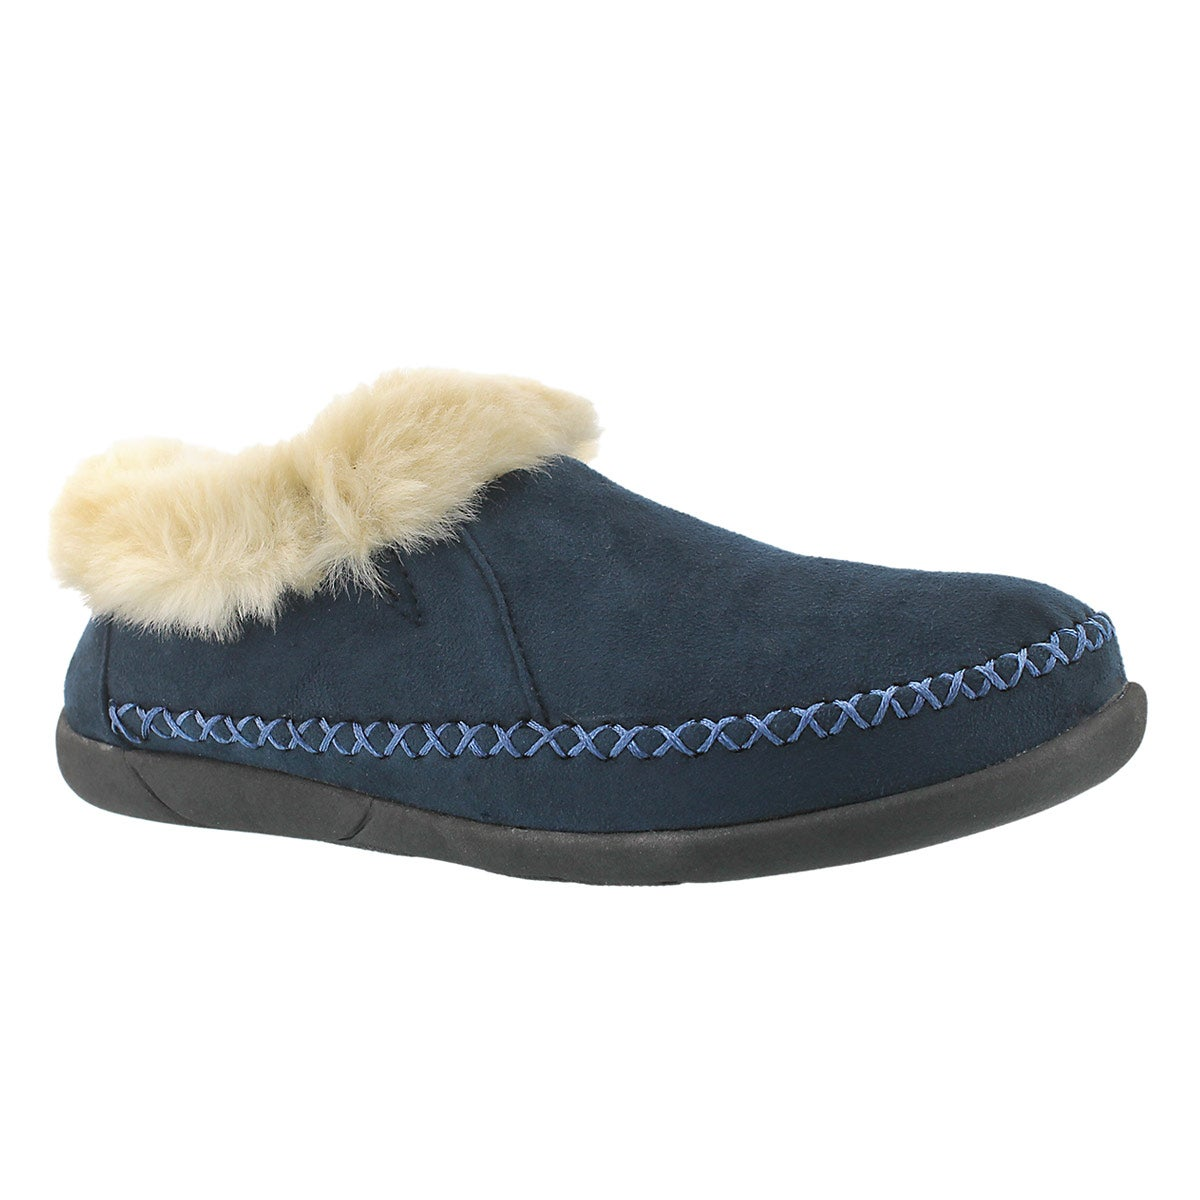 Women's SHAE navy slip on booties